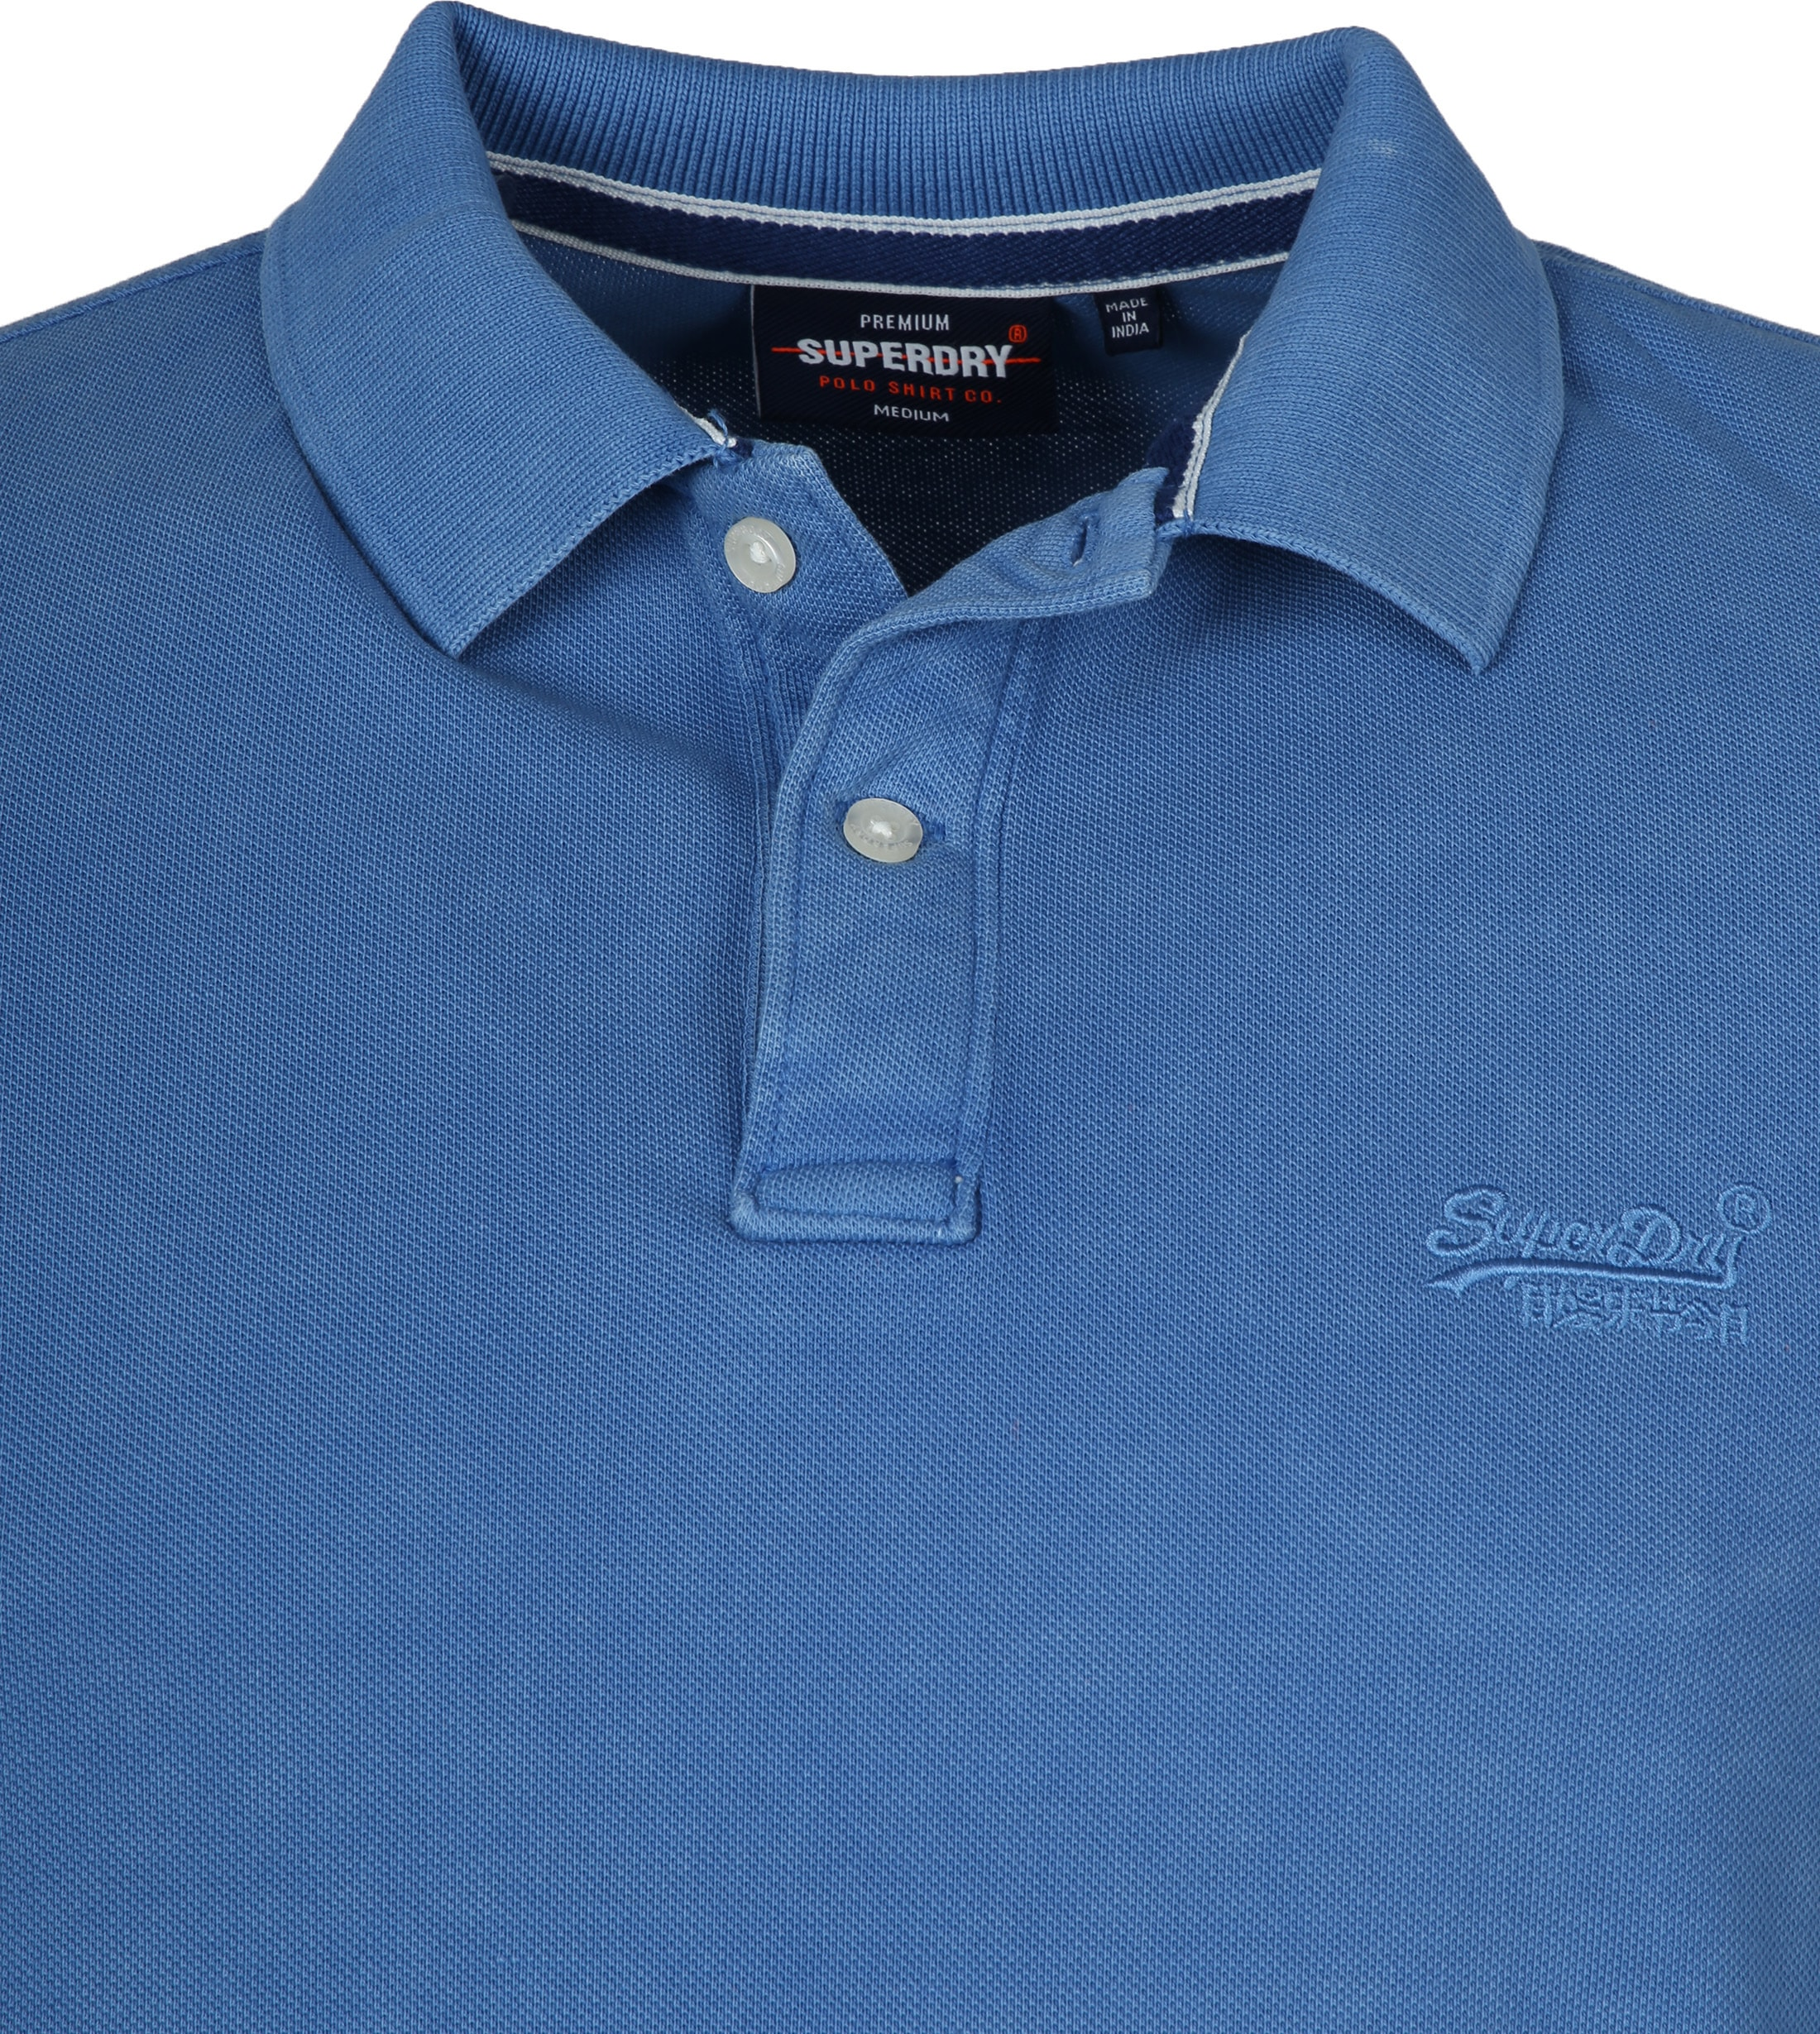 Superdry Vintage Destroyed Pique Polo Blauw